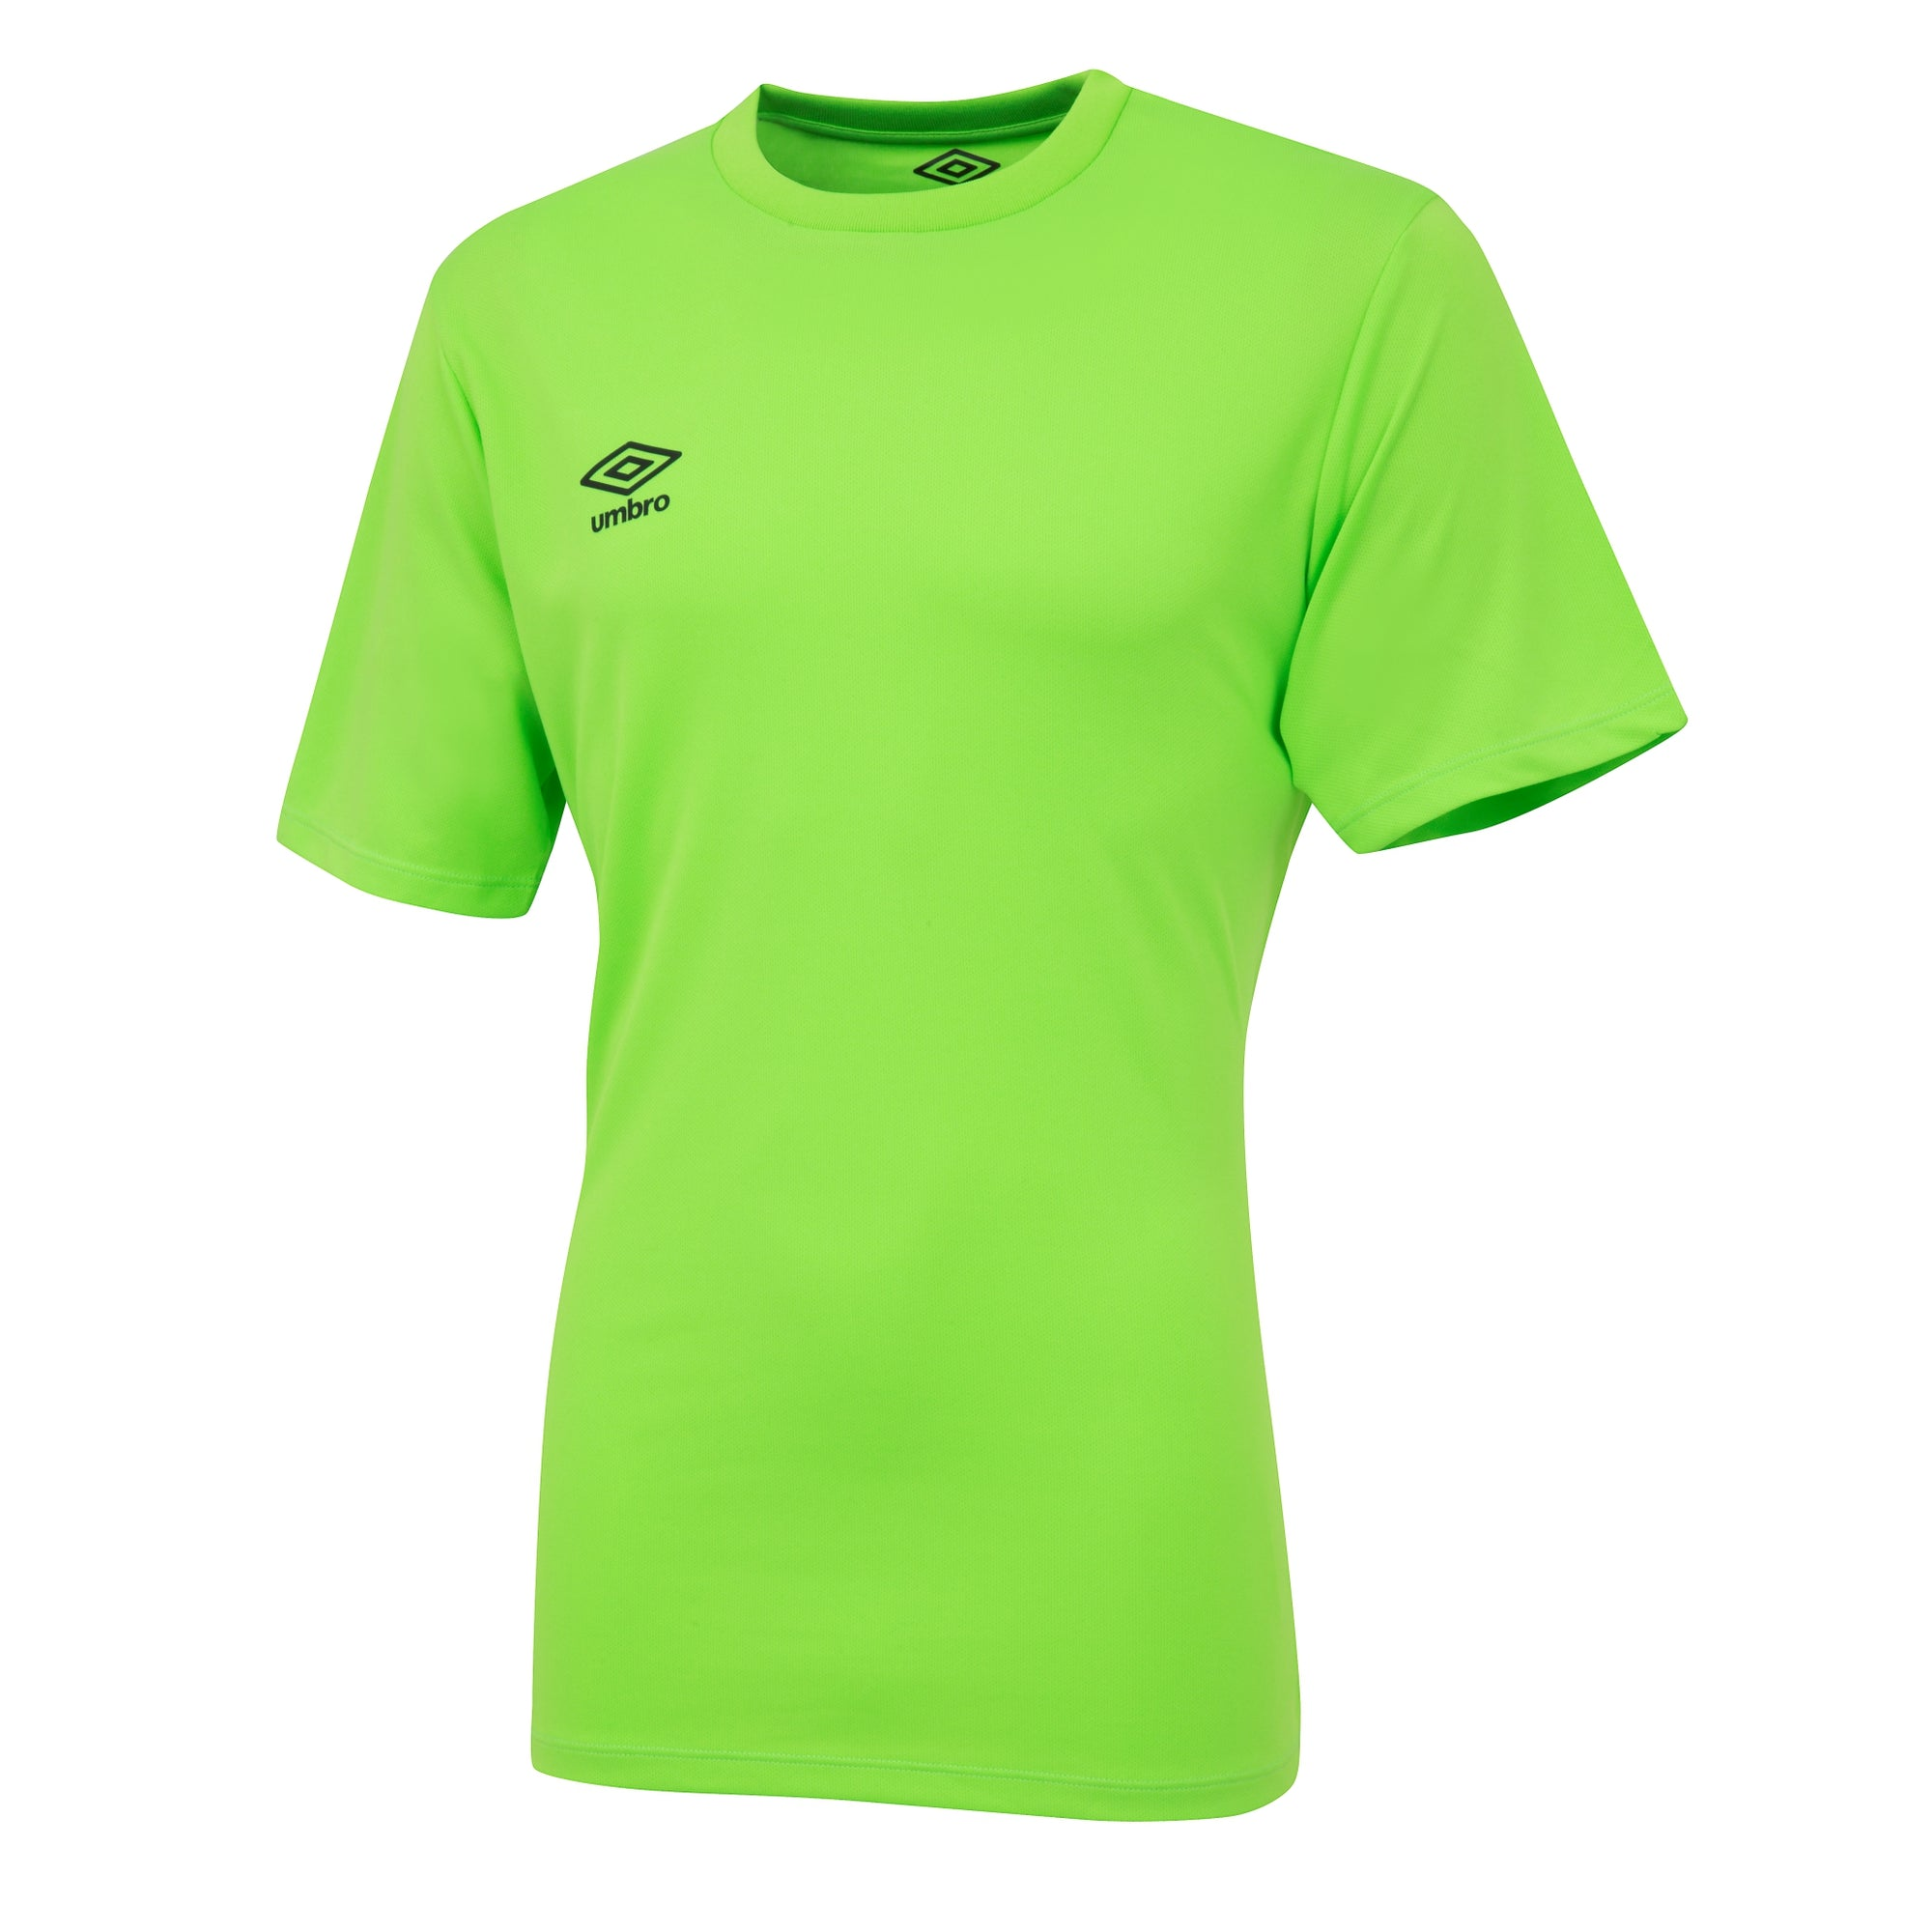 Umbro short sleeve club jersey in gecko green with black printed Umbro logo